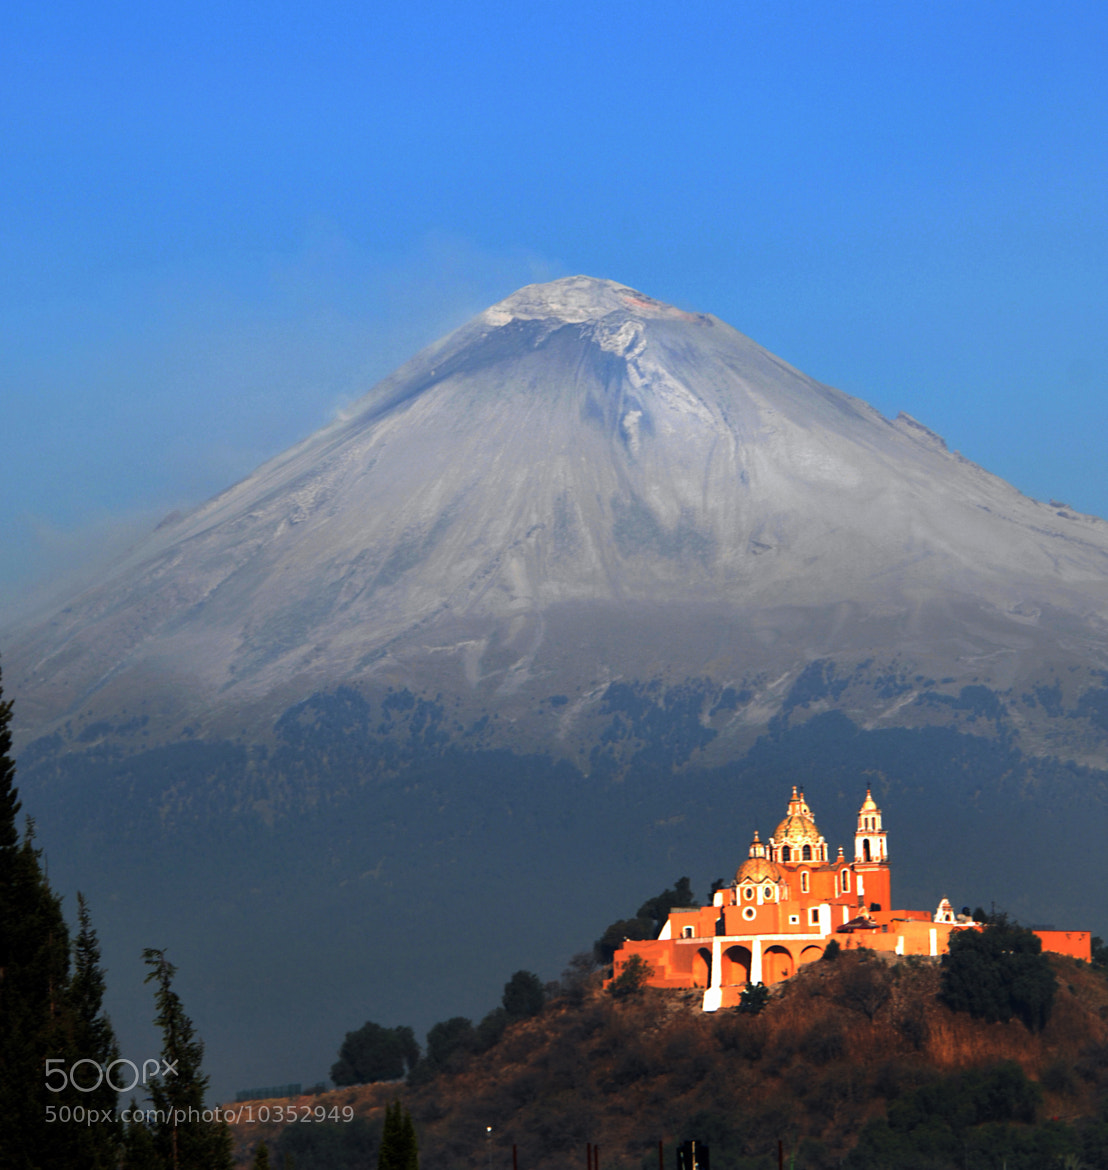 Photograph Iced Volcano and Church by Cristobal Garciaferro Rubio on 500px